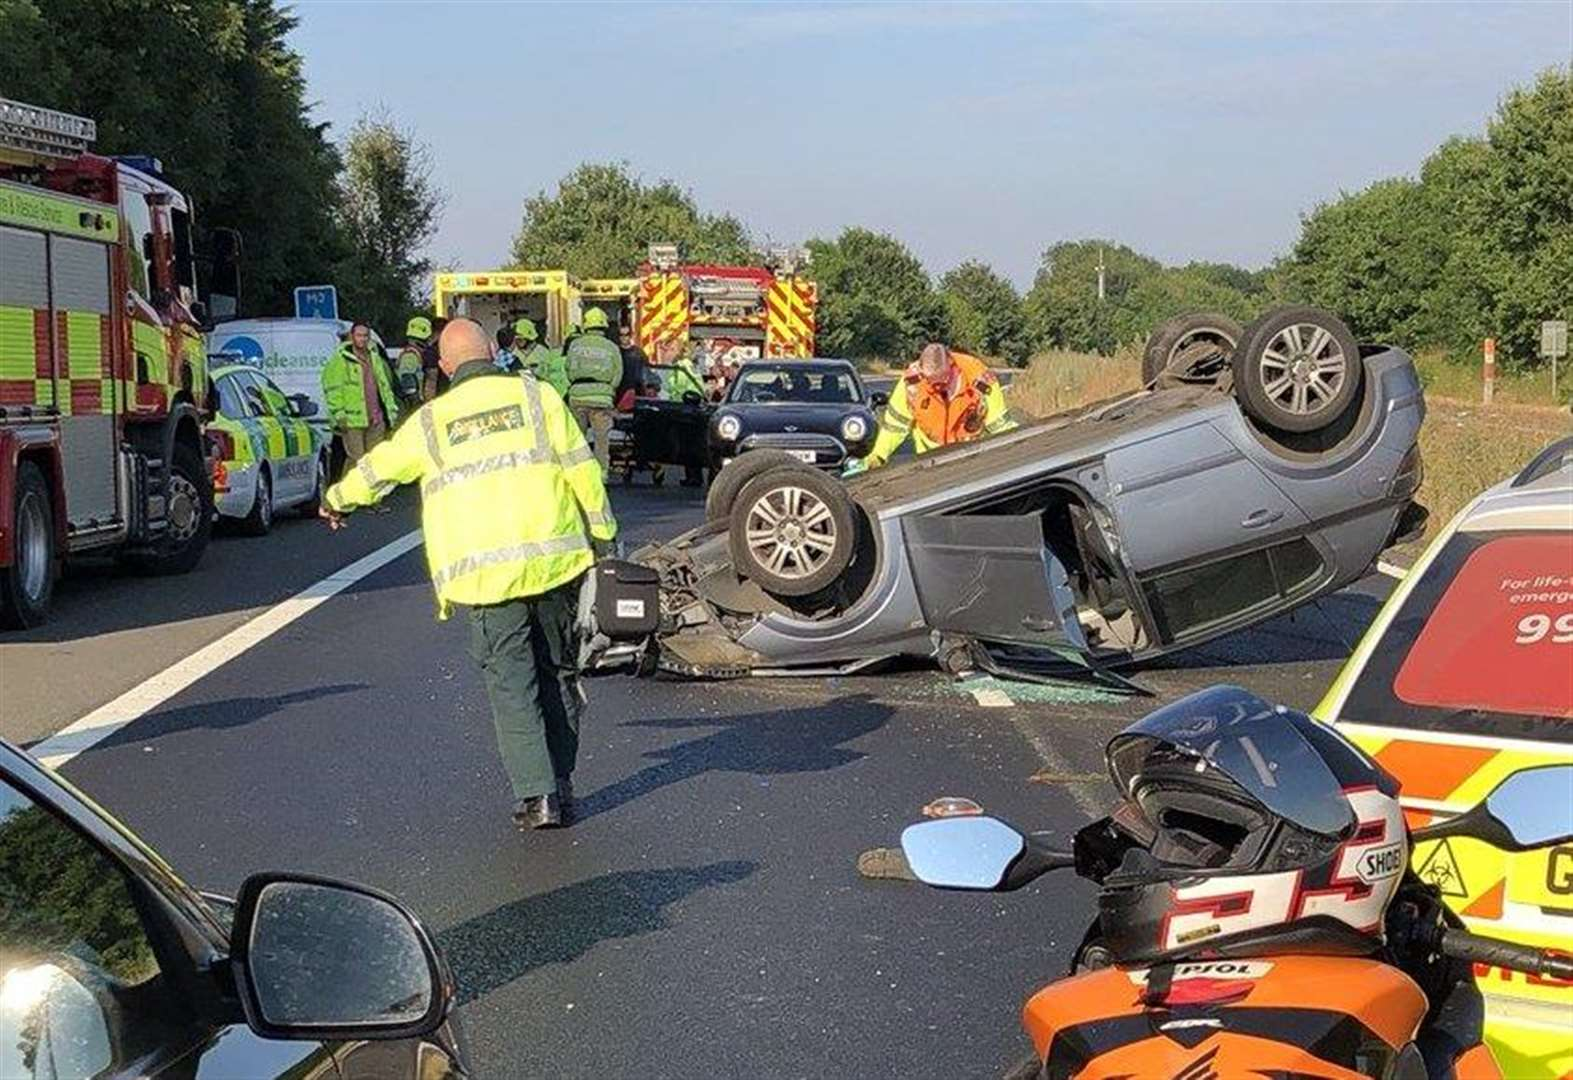 Delays as car overturns